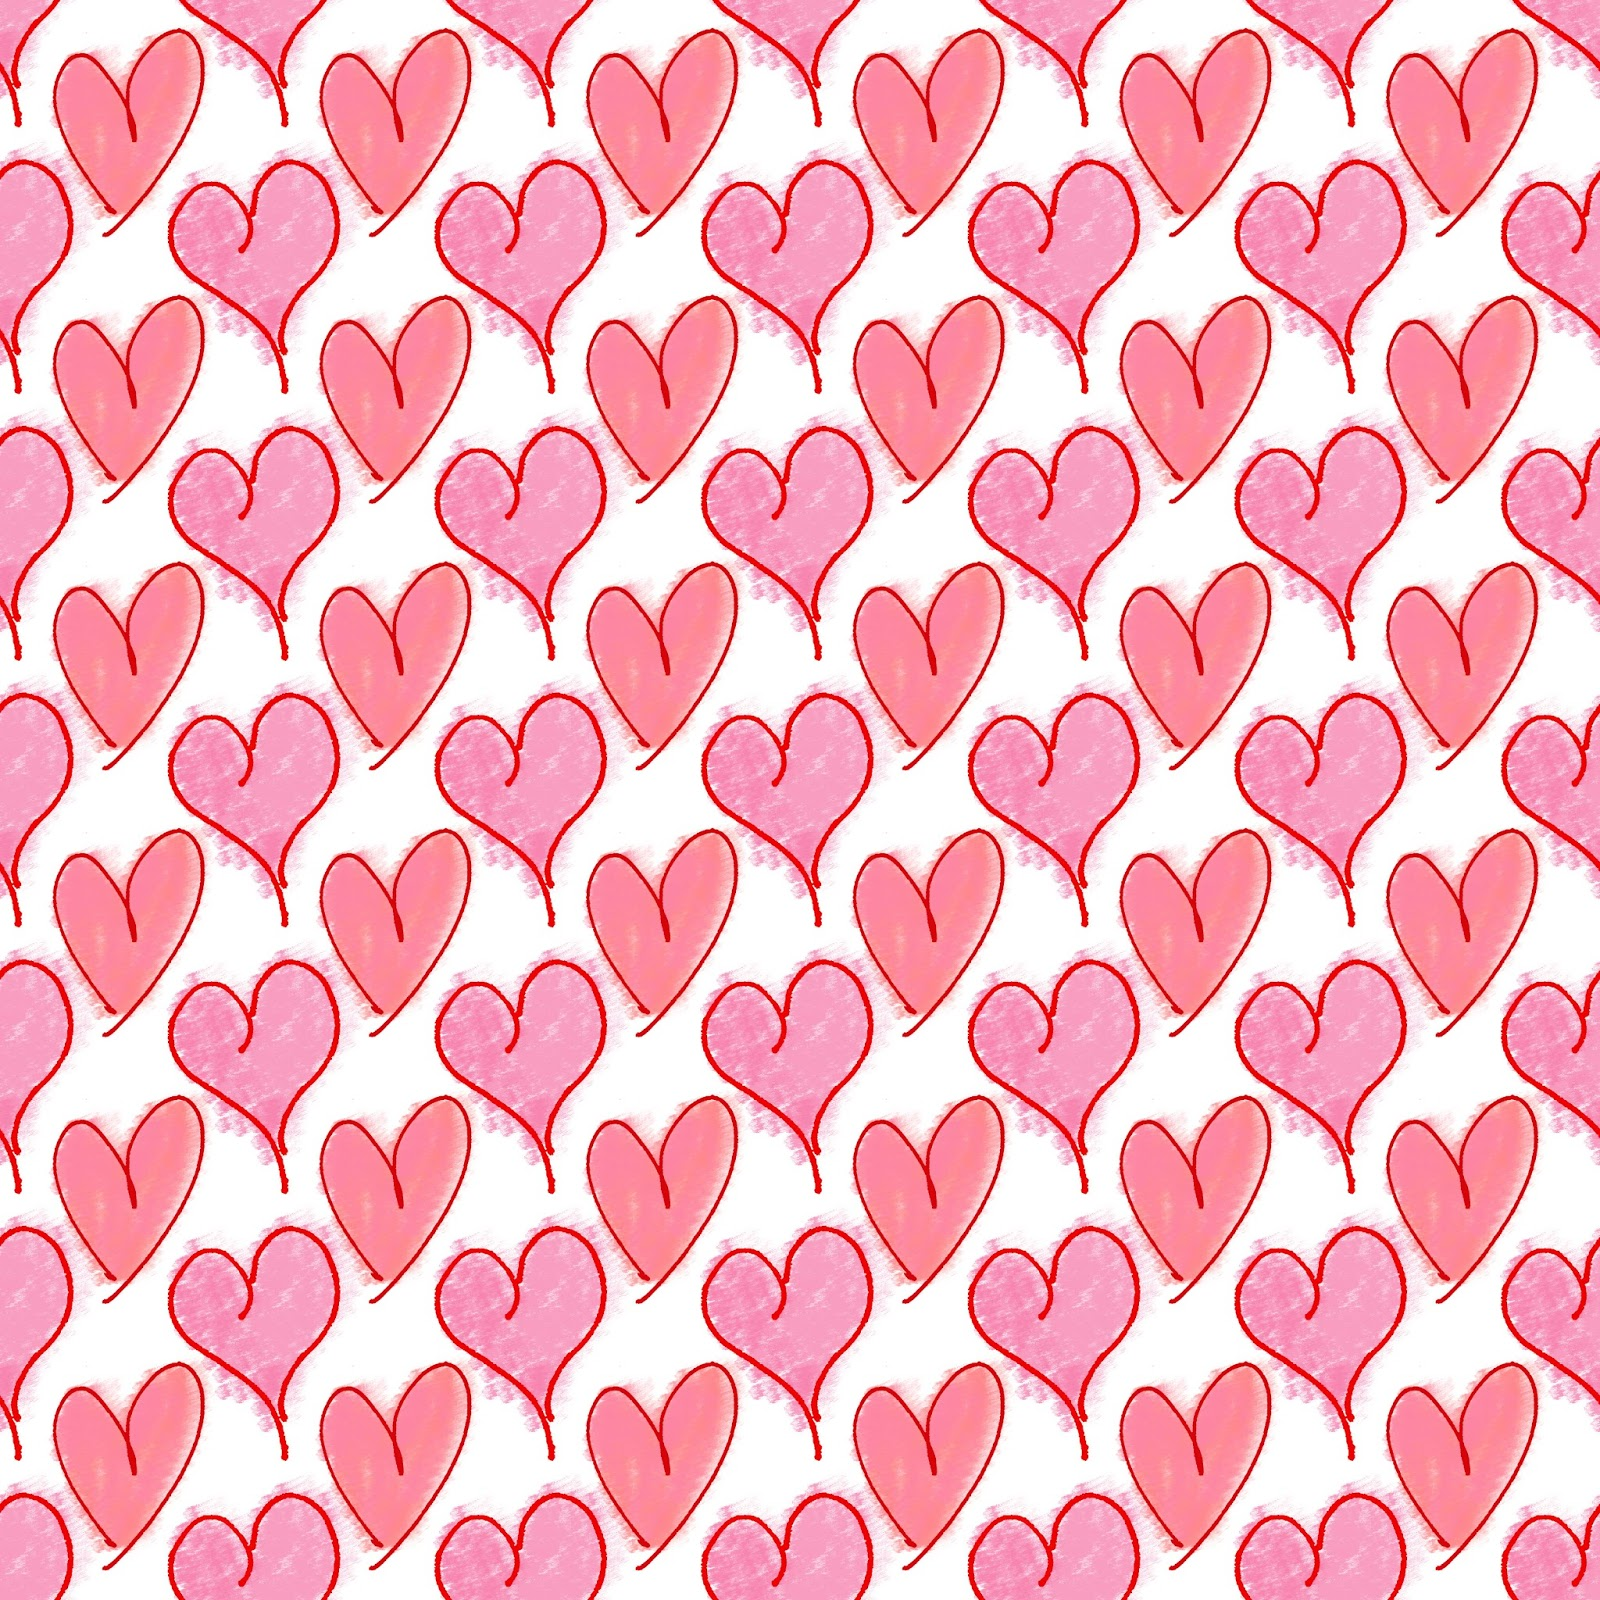 image regarding Printable Valentines Hearts referred to as The Graphics Monarch: Royalty Totally free Valentine Hearts Hand